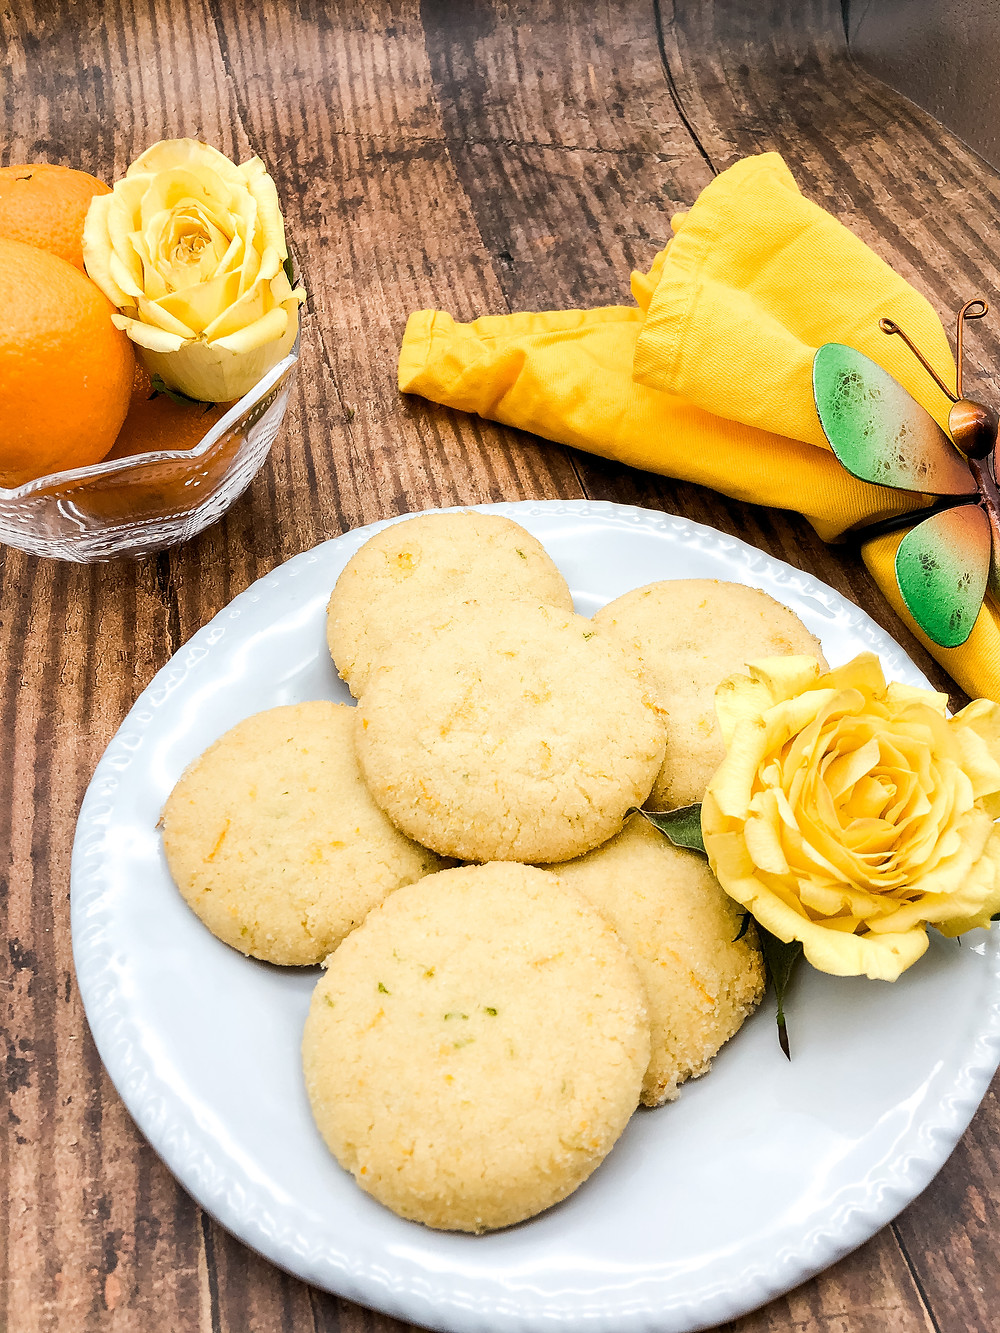 Citrus Cookies inspired by magical realism novel Sweet Canary Jane.